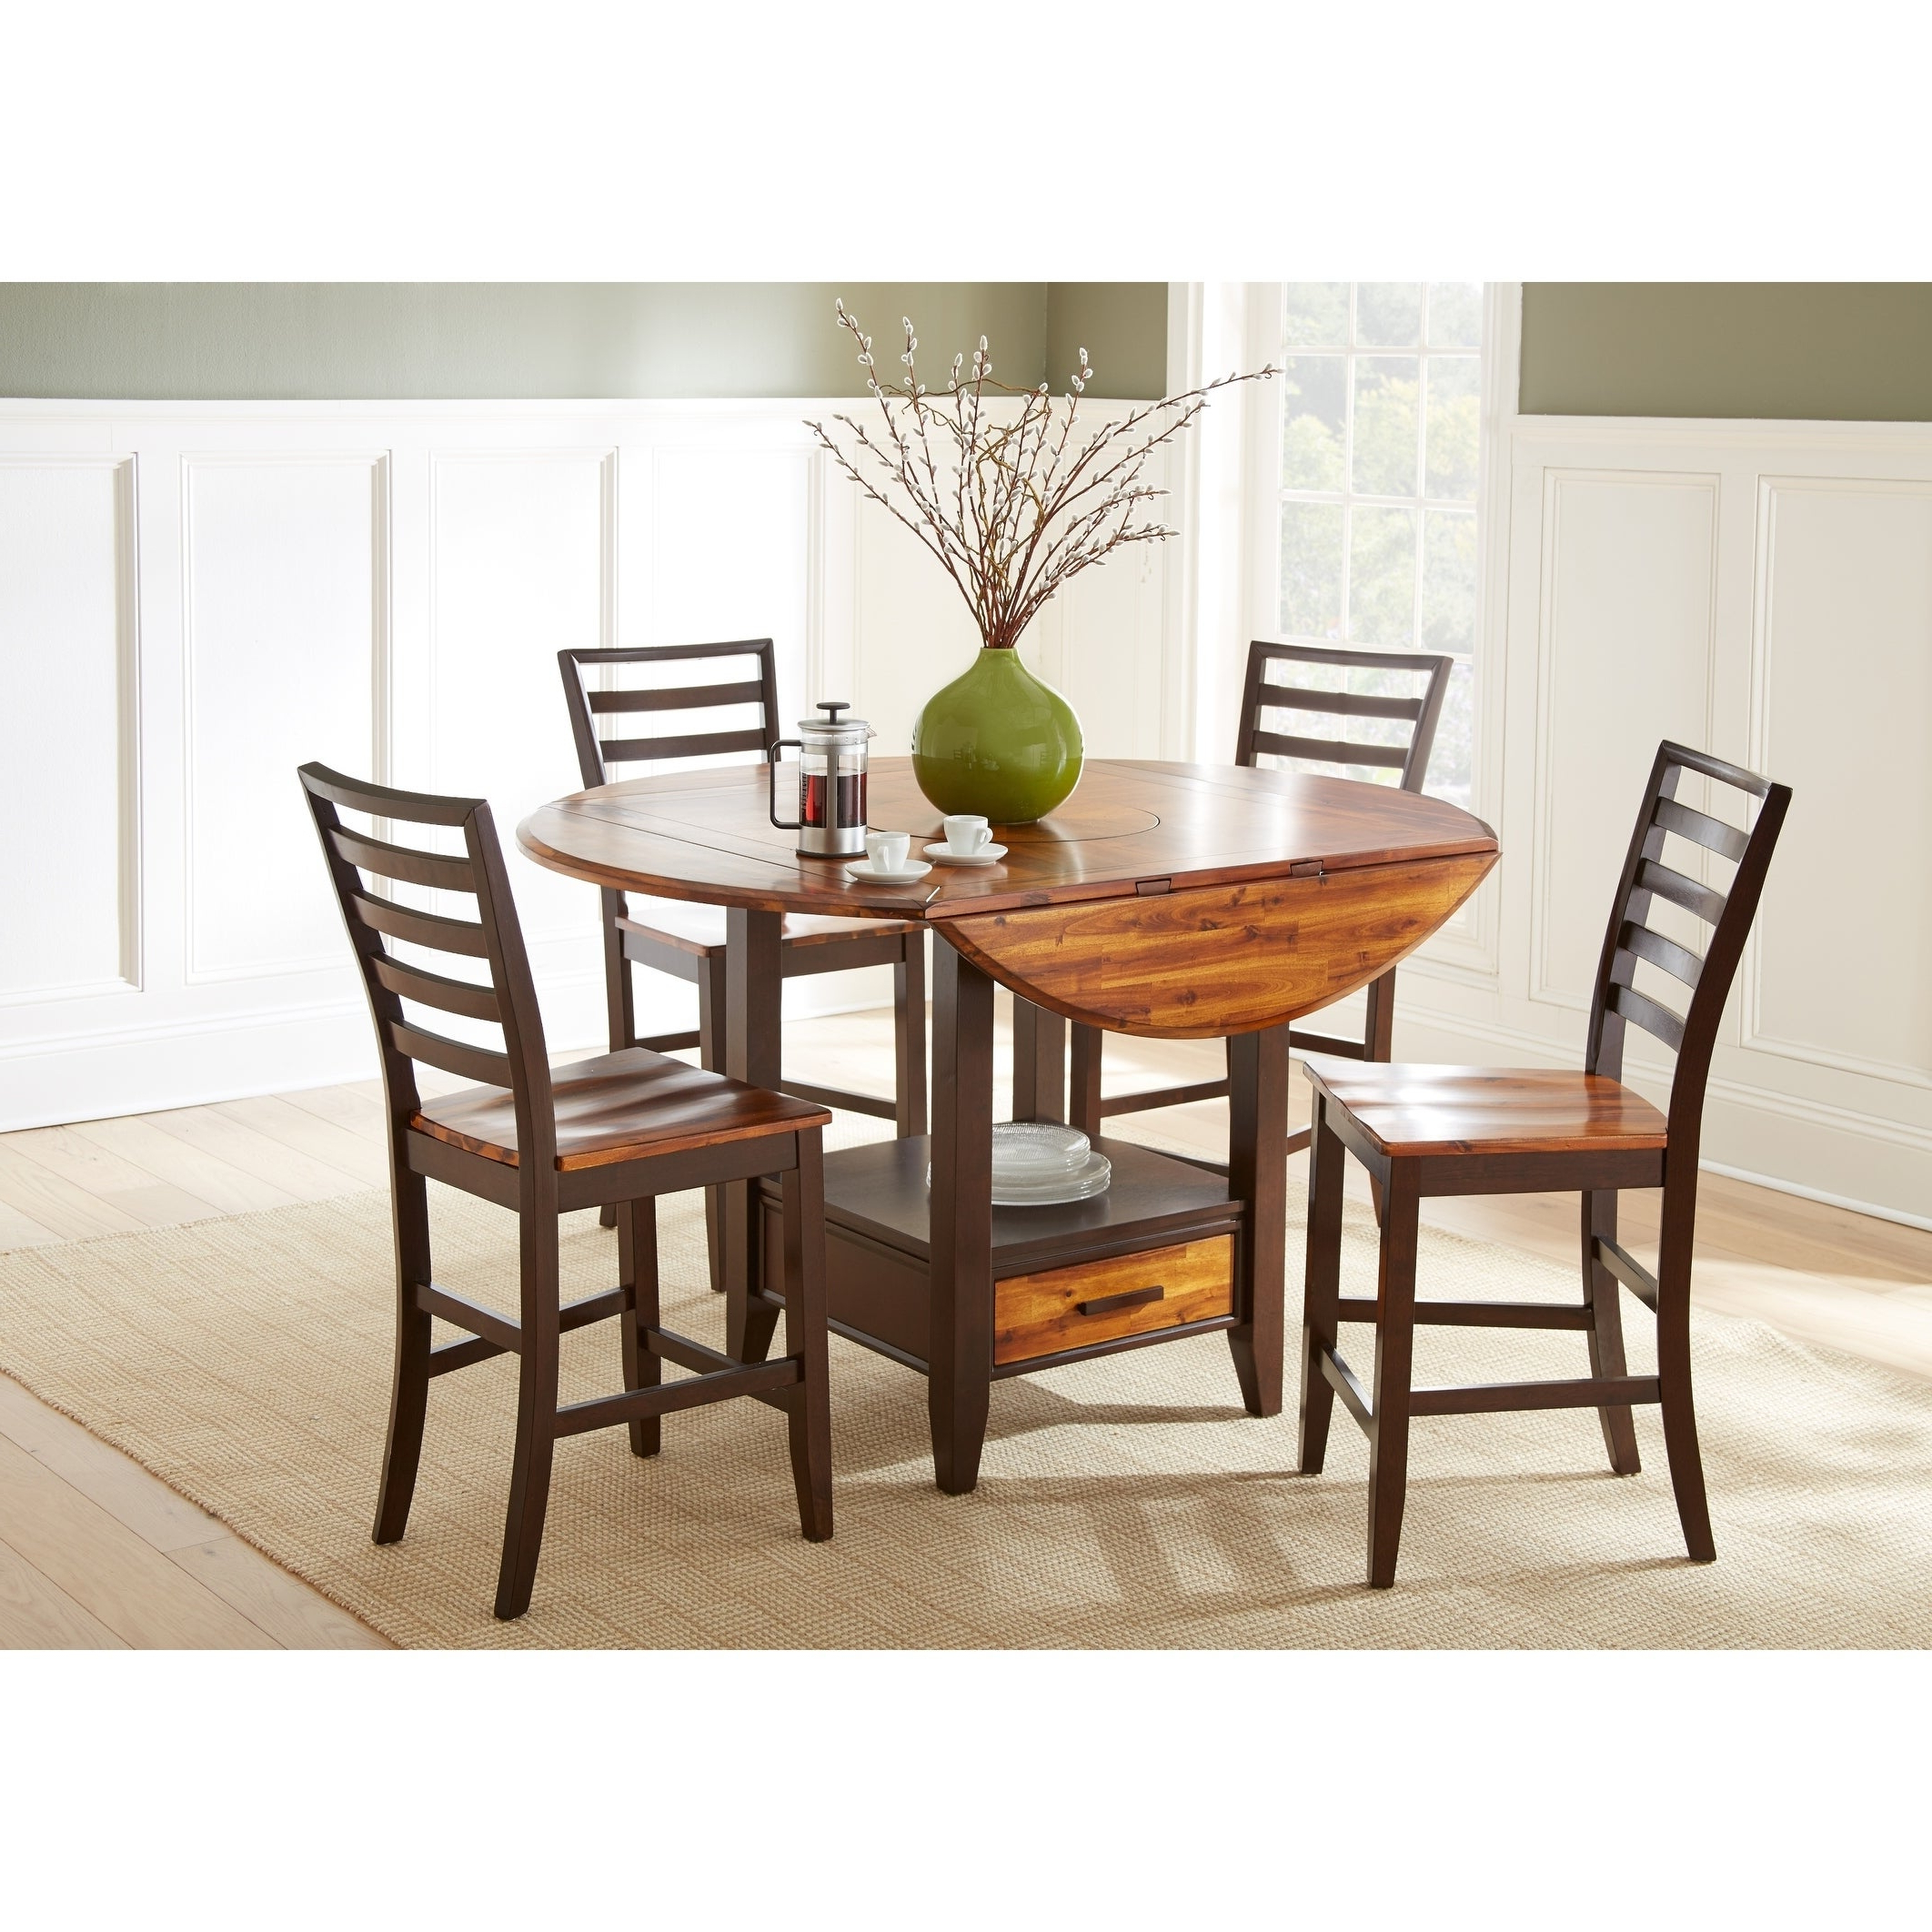 Popular Buy Farmhouse Kitchen & Dining Room Sets Online At Overstock (View 8 of 25)